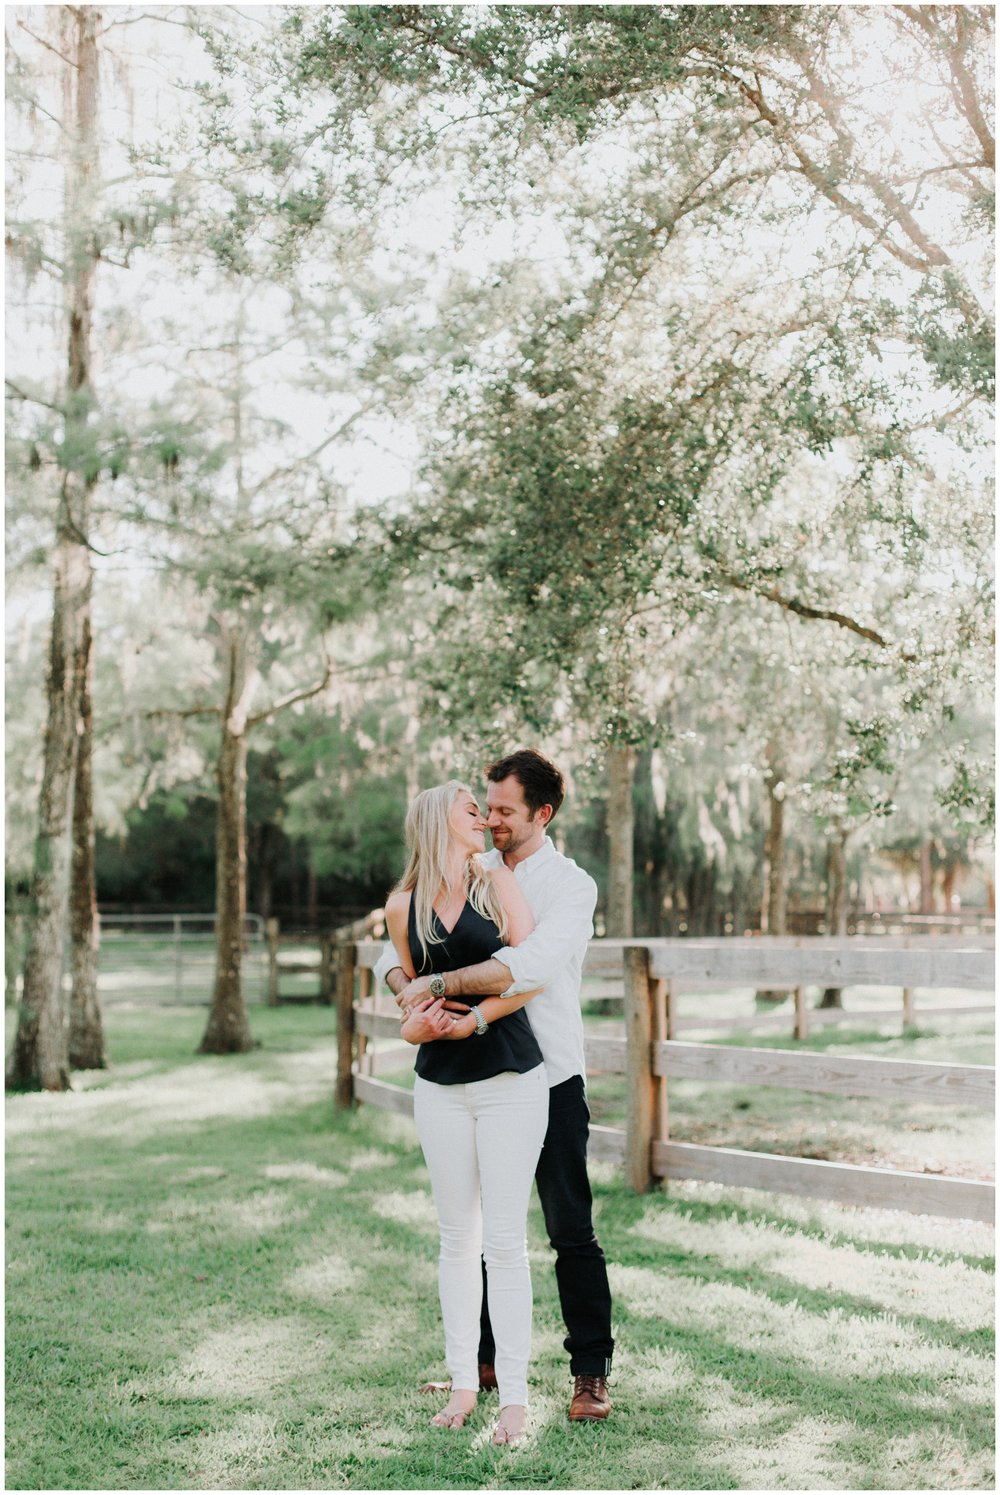 Engagement photos in Jupiter Florida at BMR Stables. Planning your engagement session at a farm.